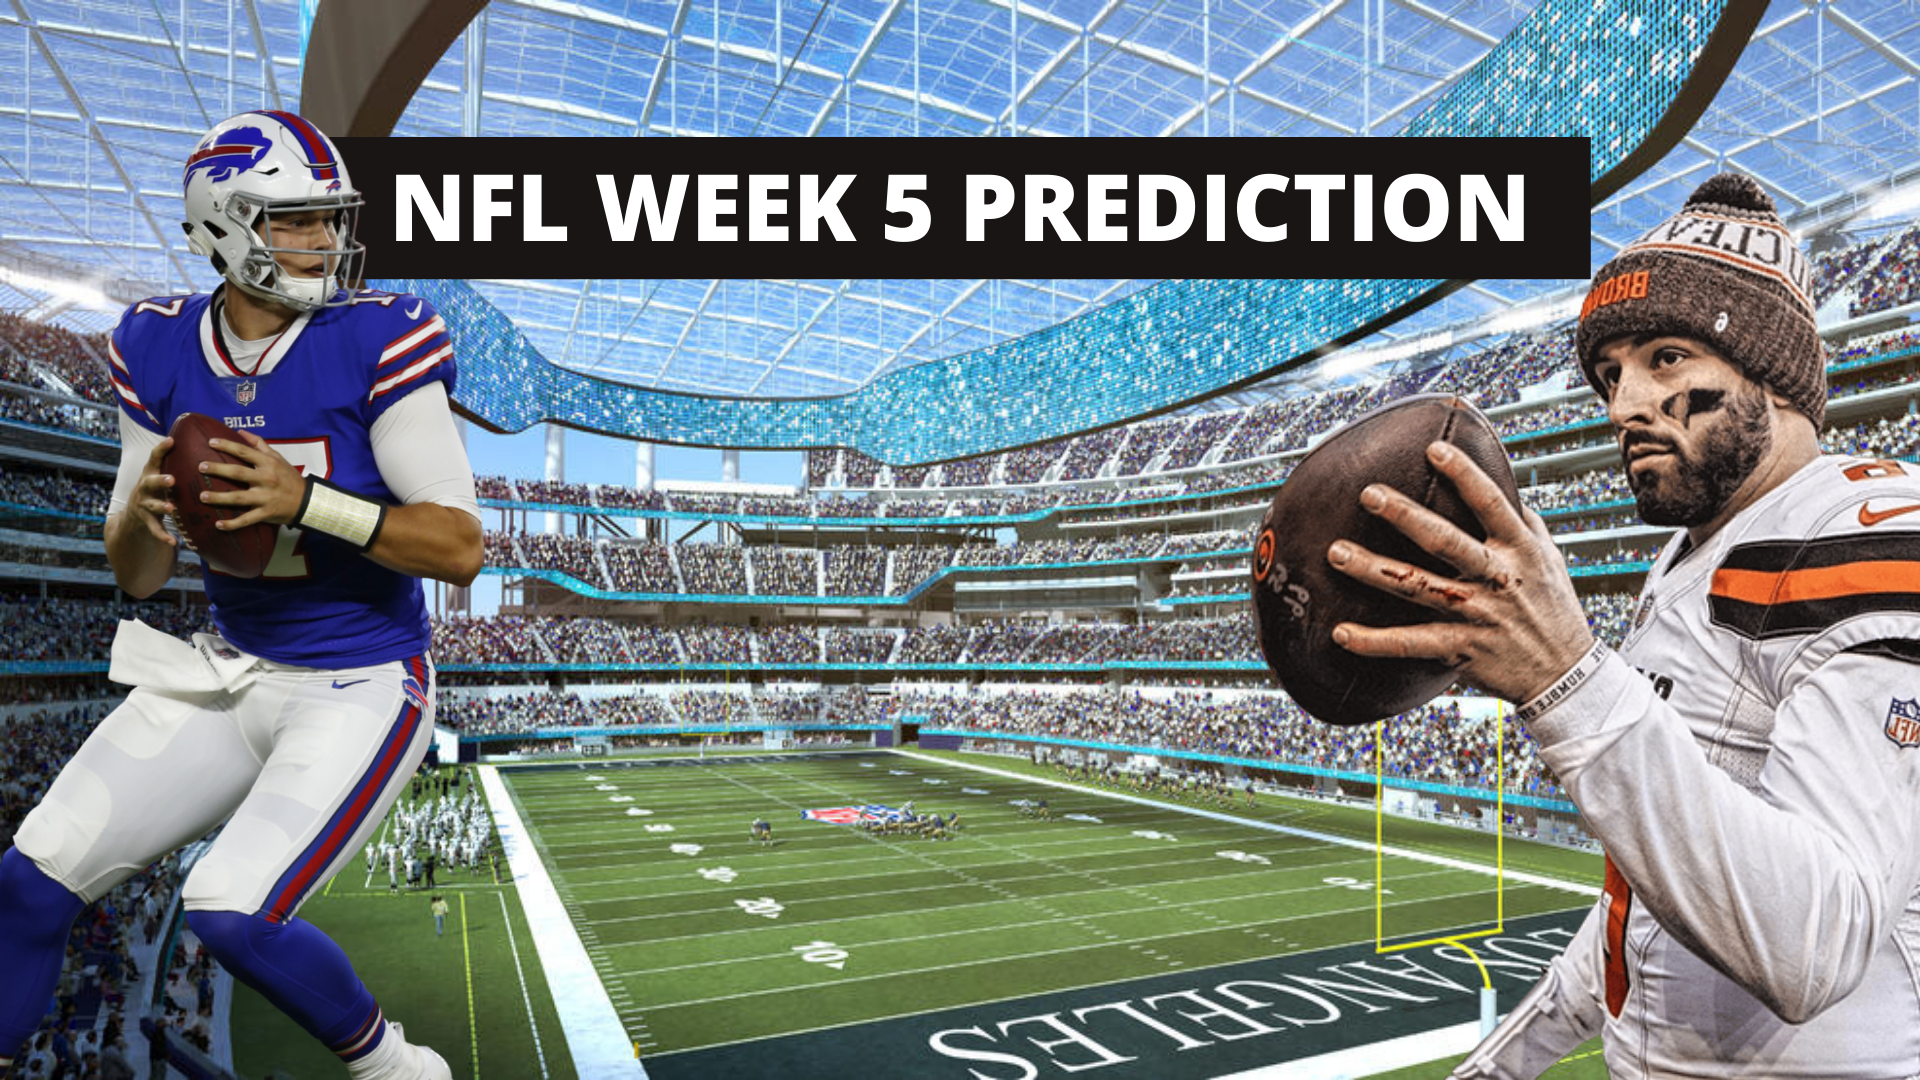 NFL Week 5 betting odds, predictions and expert picks - THE SPORTS ROOM